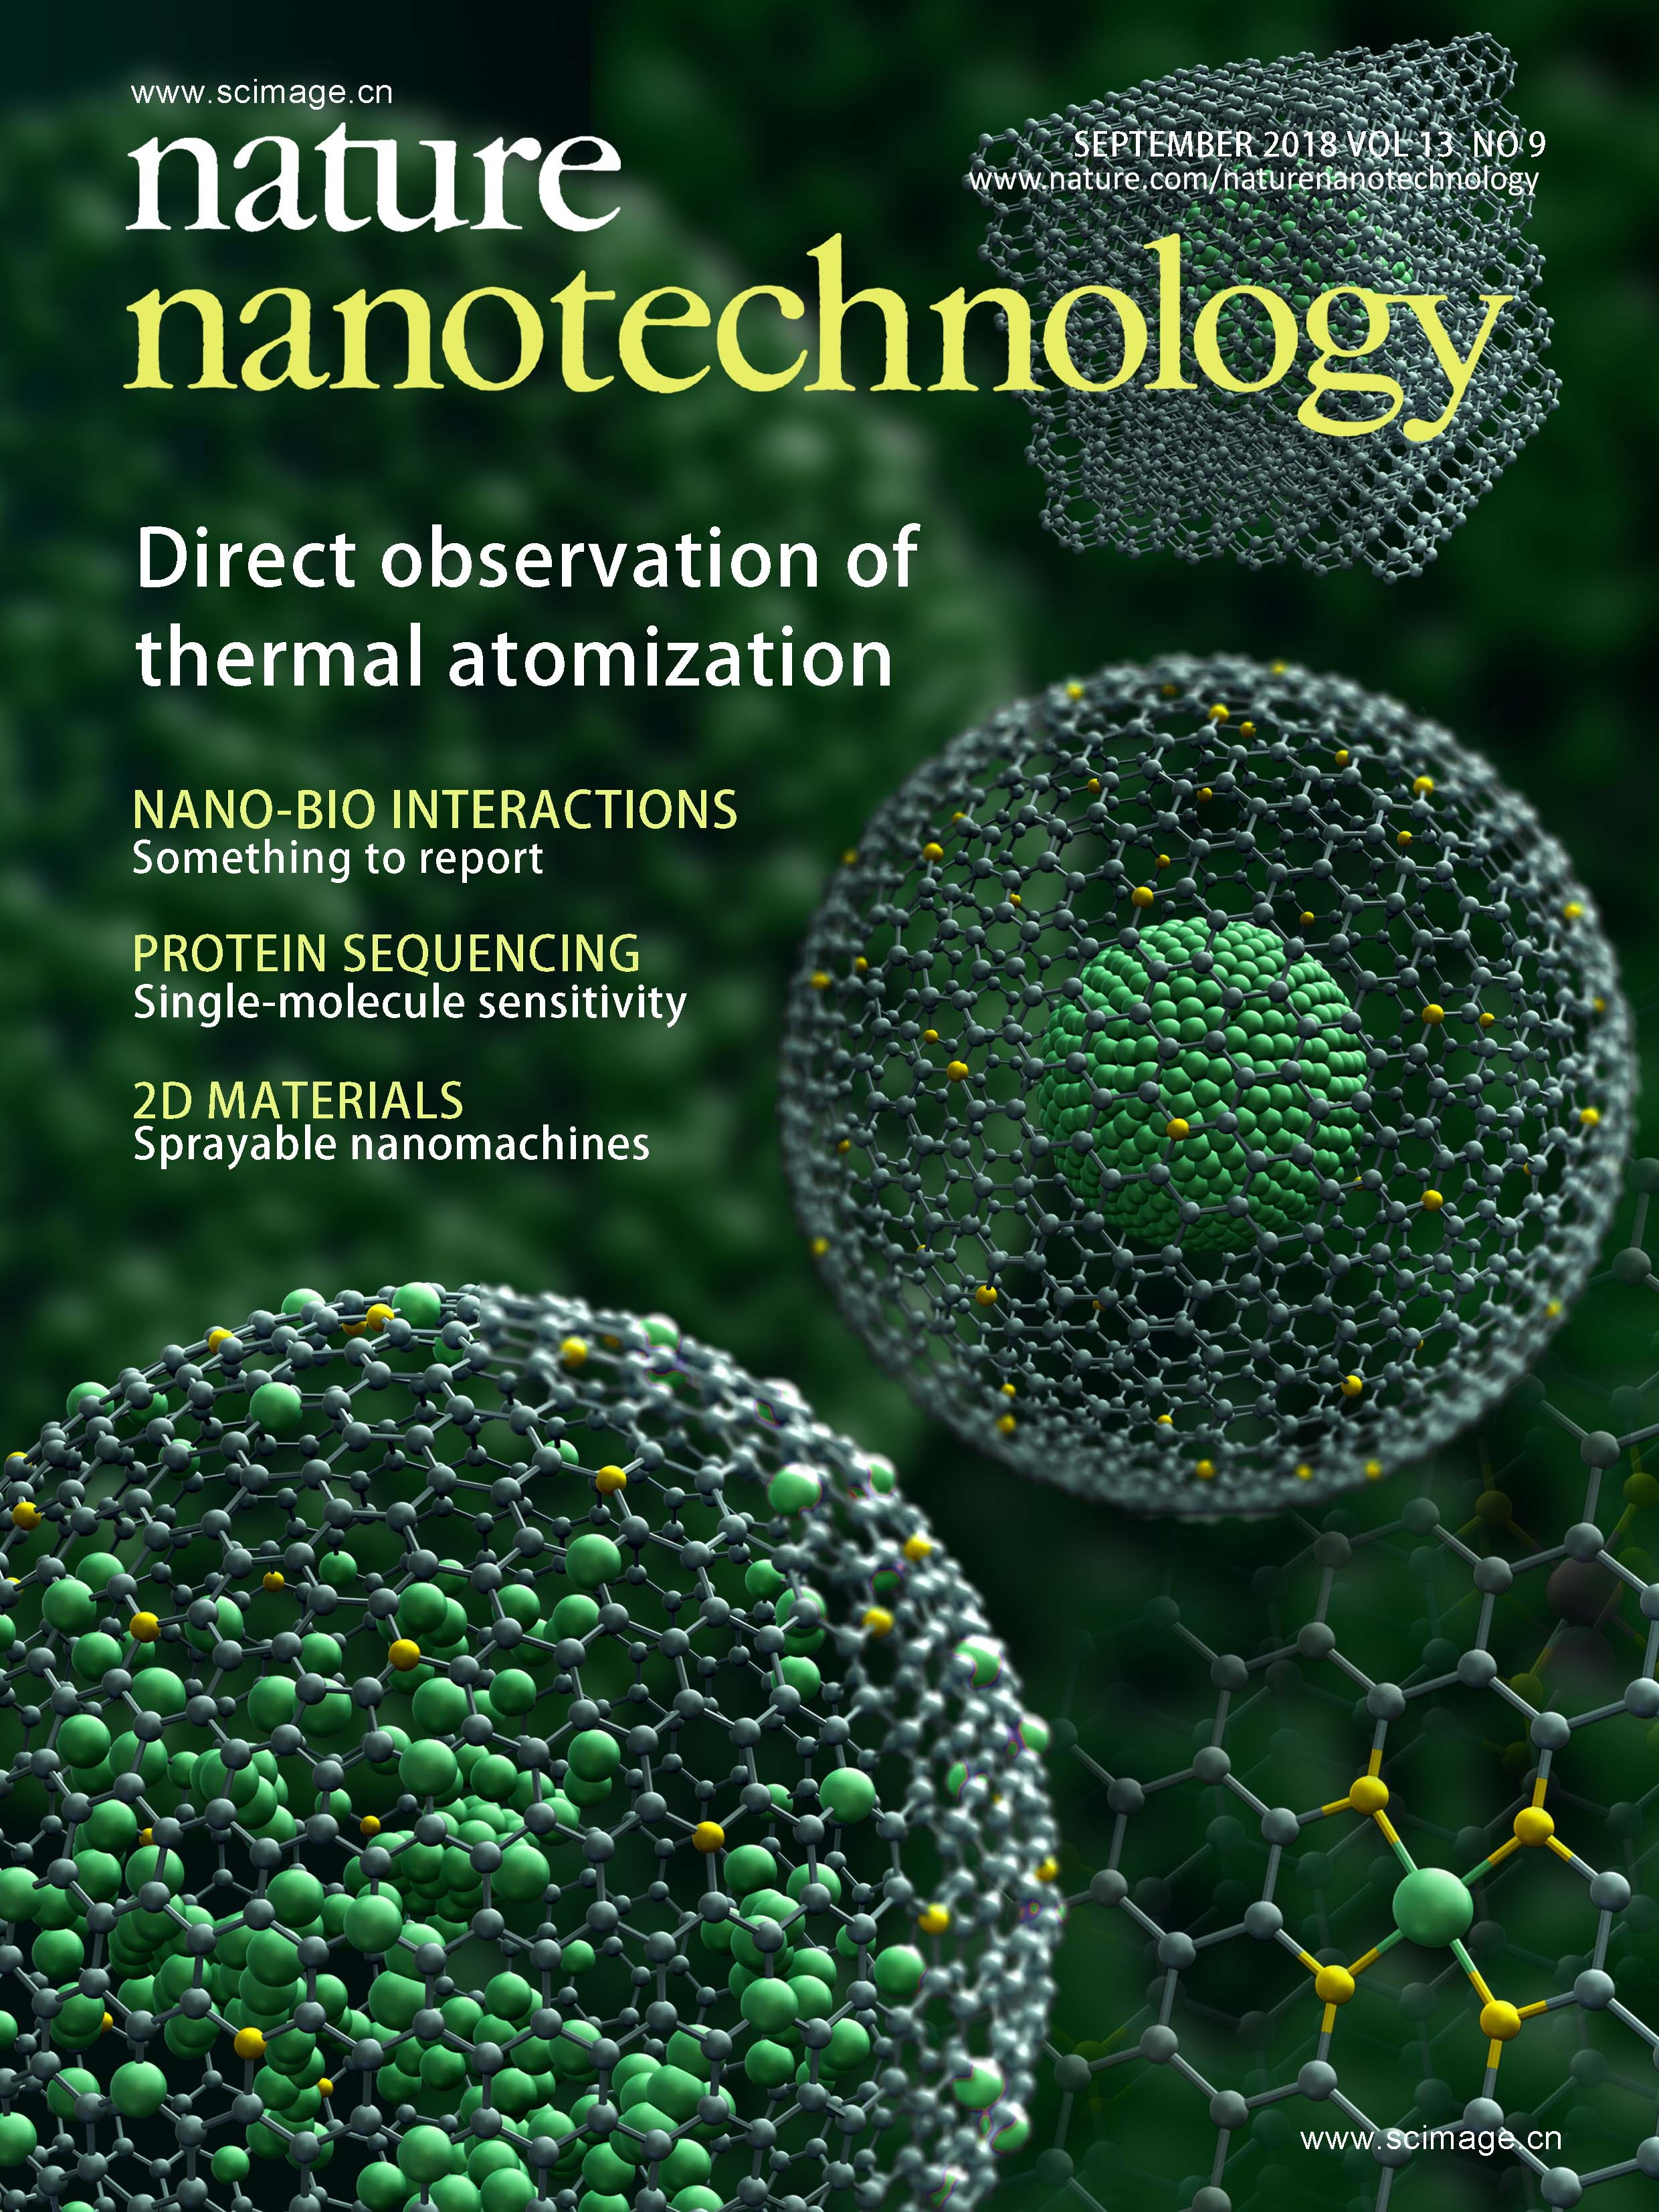 Direct observation of noble metal nanoparticles transforming to thermally   stable single atoms